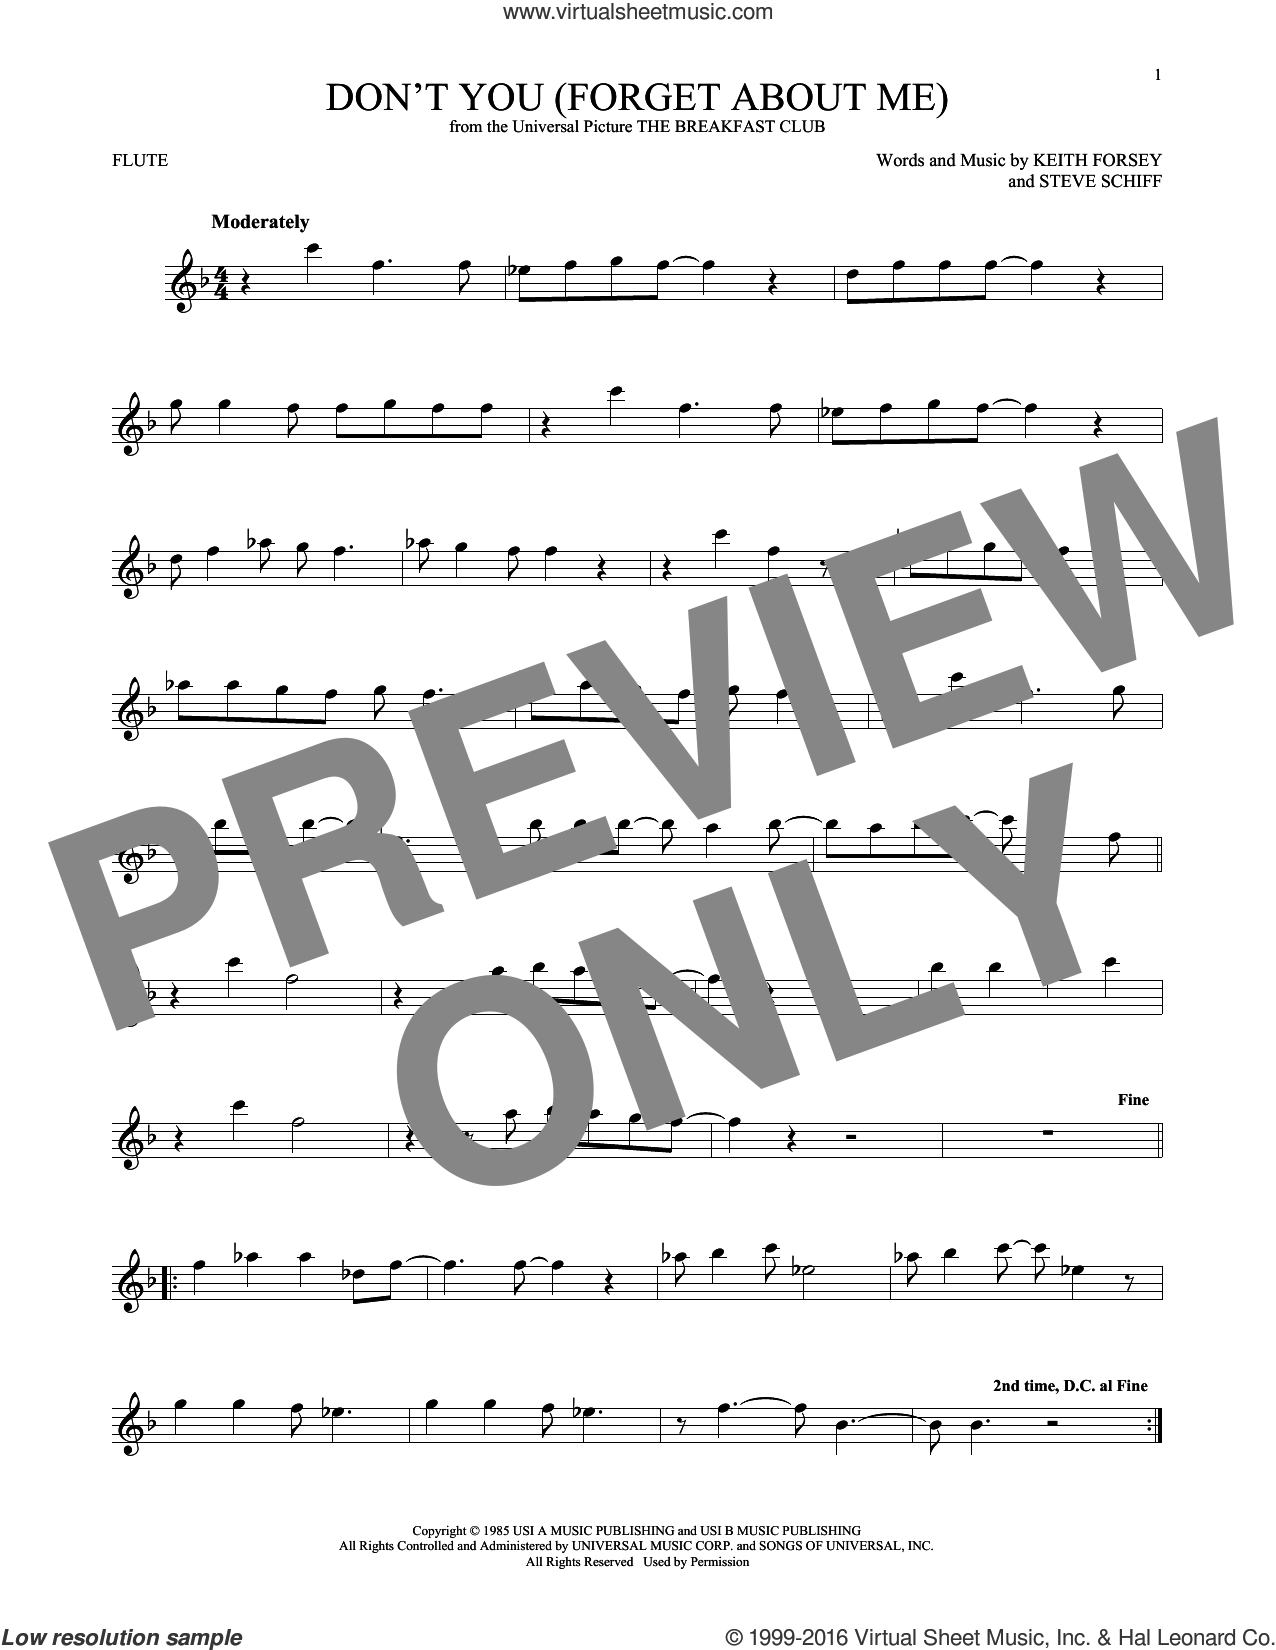 Don't You (Forget About Me) sheet music for flute solo by Simple Minds, Hawk Nelson and Keith Forsey. Score Image Preview.